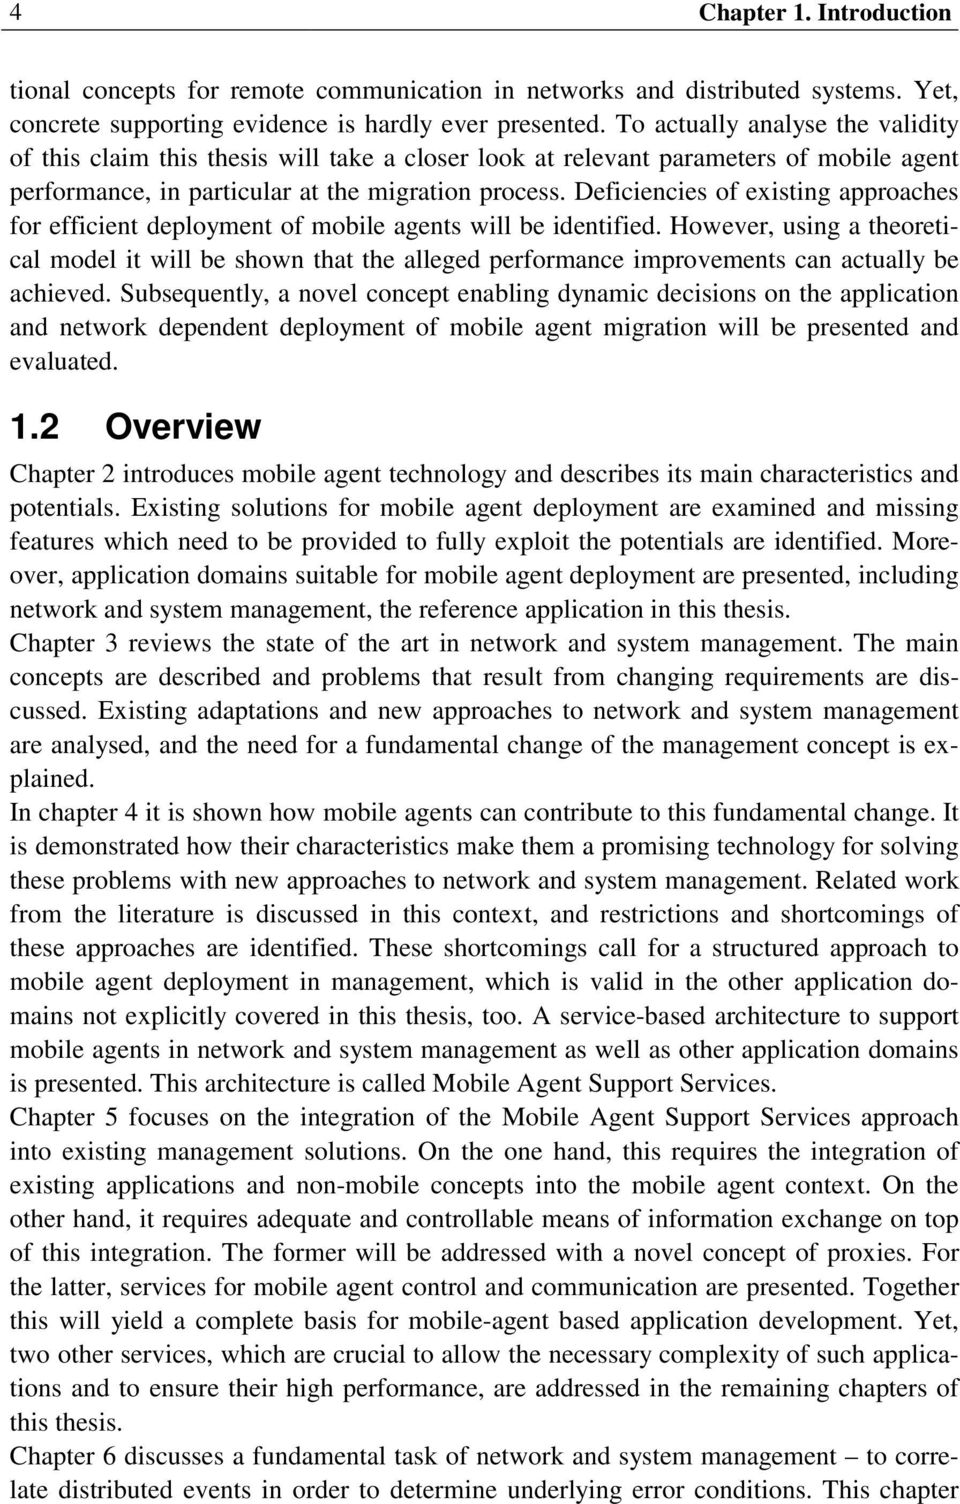 Deficiencies of existing approaches for efficient deployment of mobile agents will be identified.